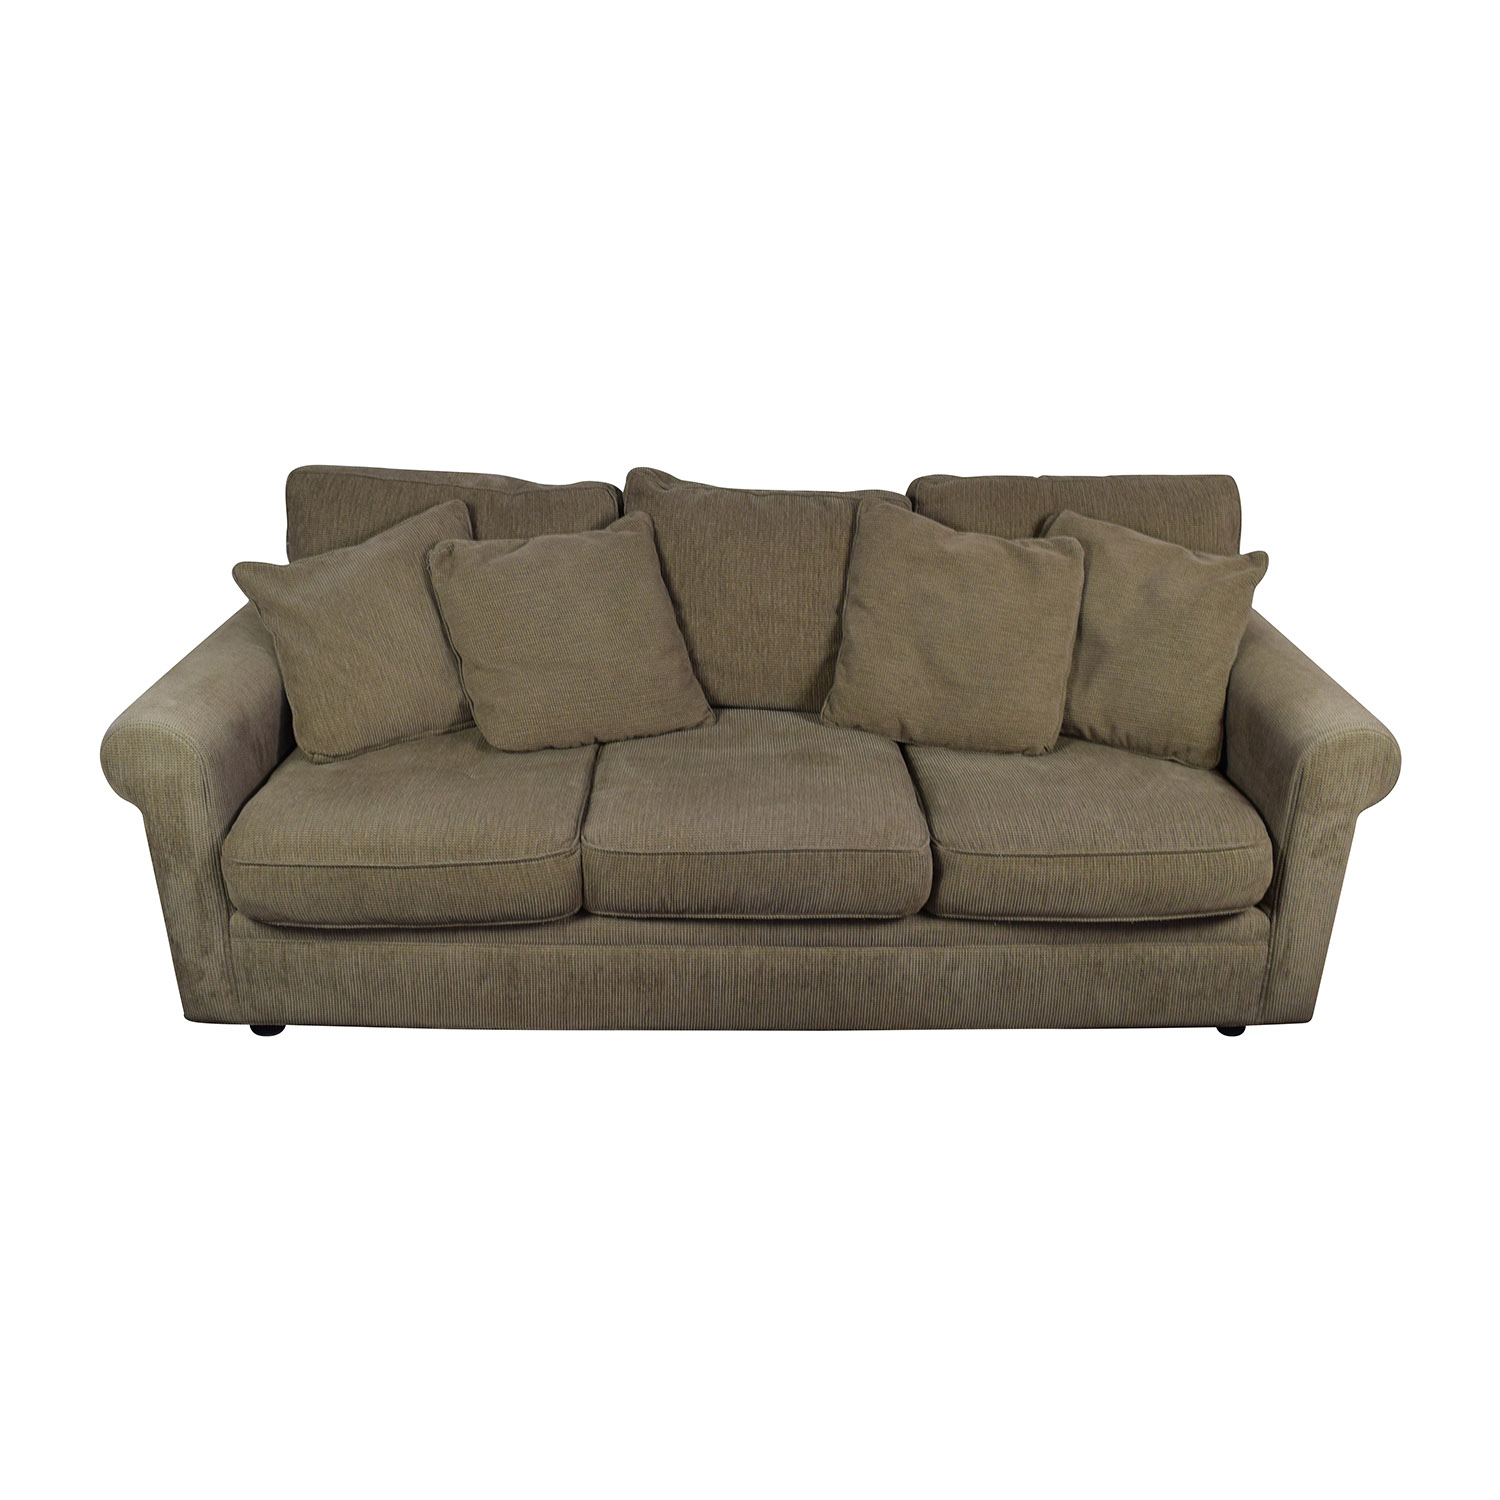 buy Crate and Barrel Tan Textured Sofa Crate and Barrel Sofas